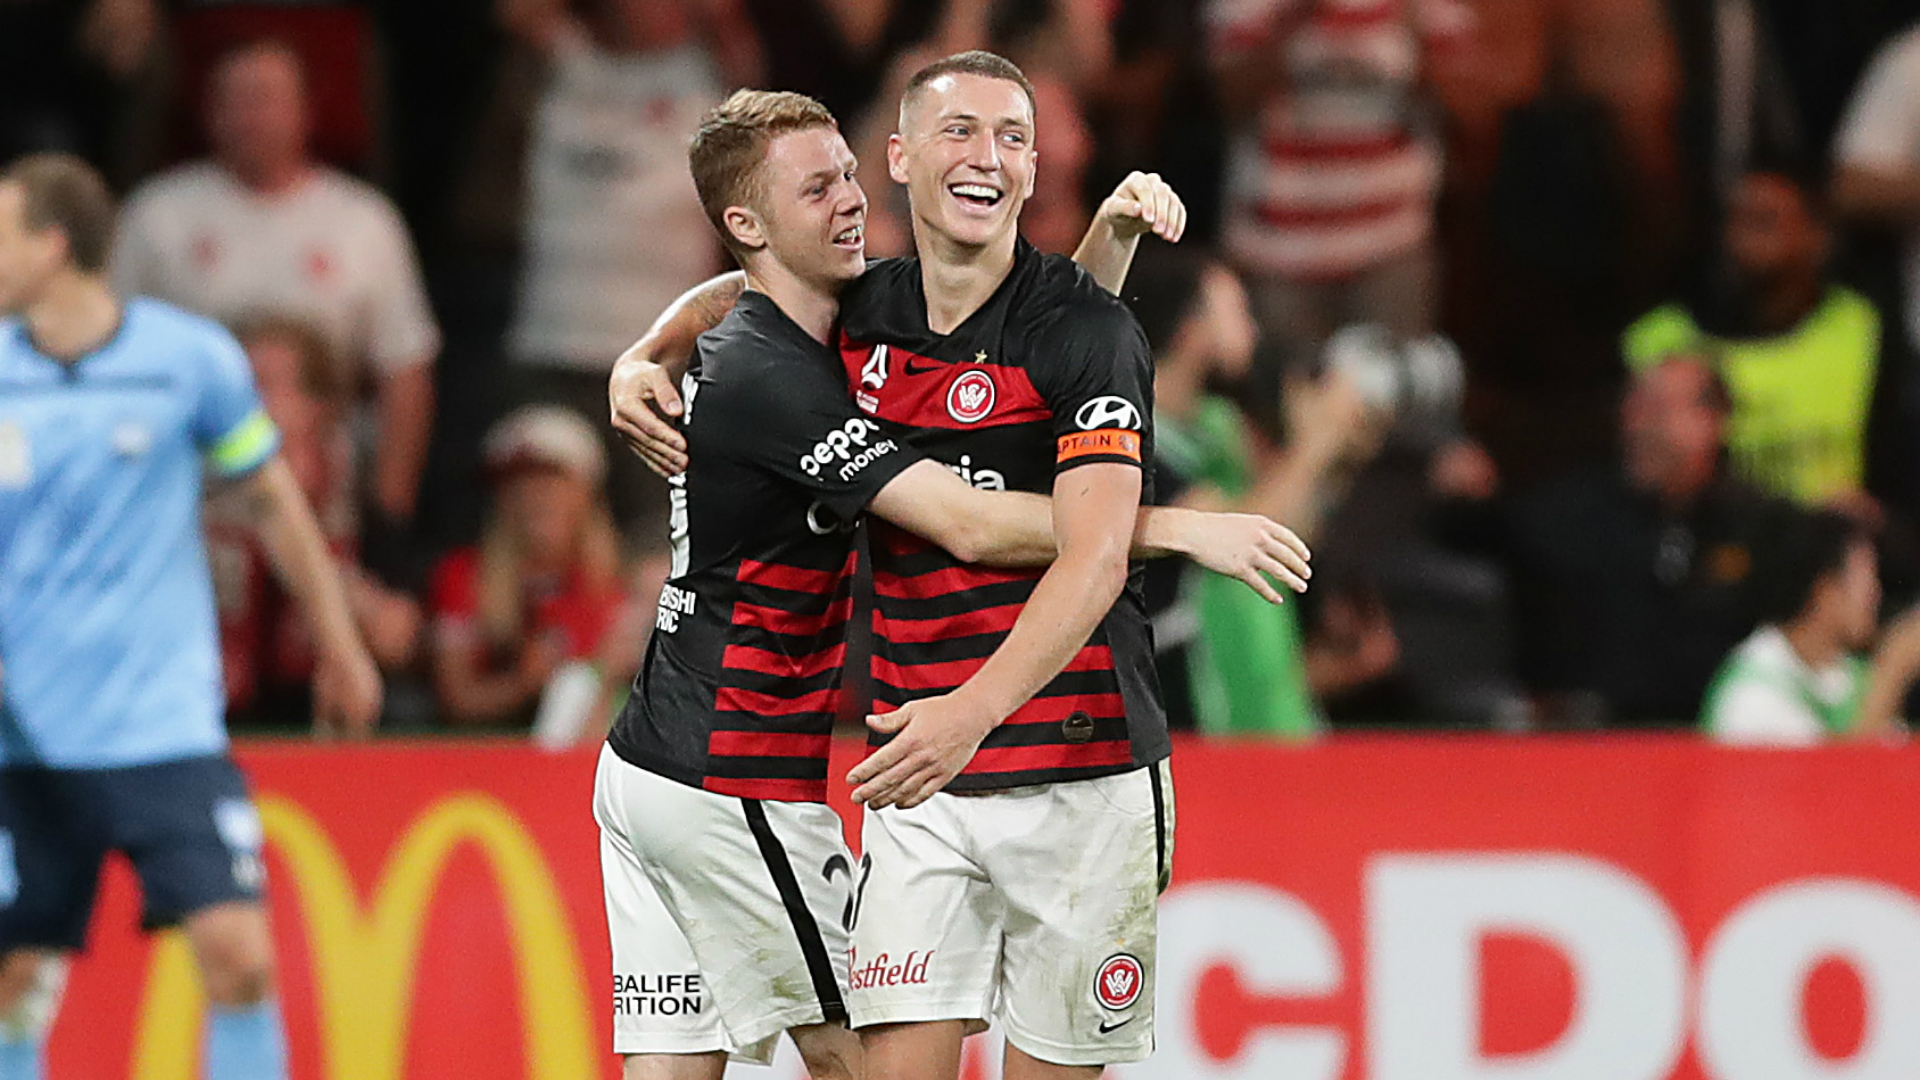 A-League Review: Duke delivers amid Sydney derby drama, McGree leads Adelaide past Newcastle